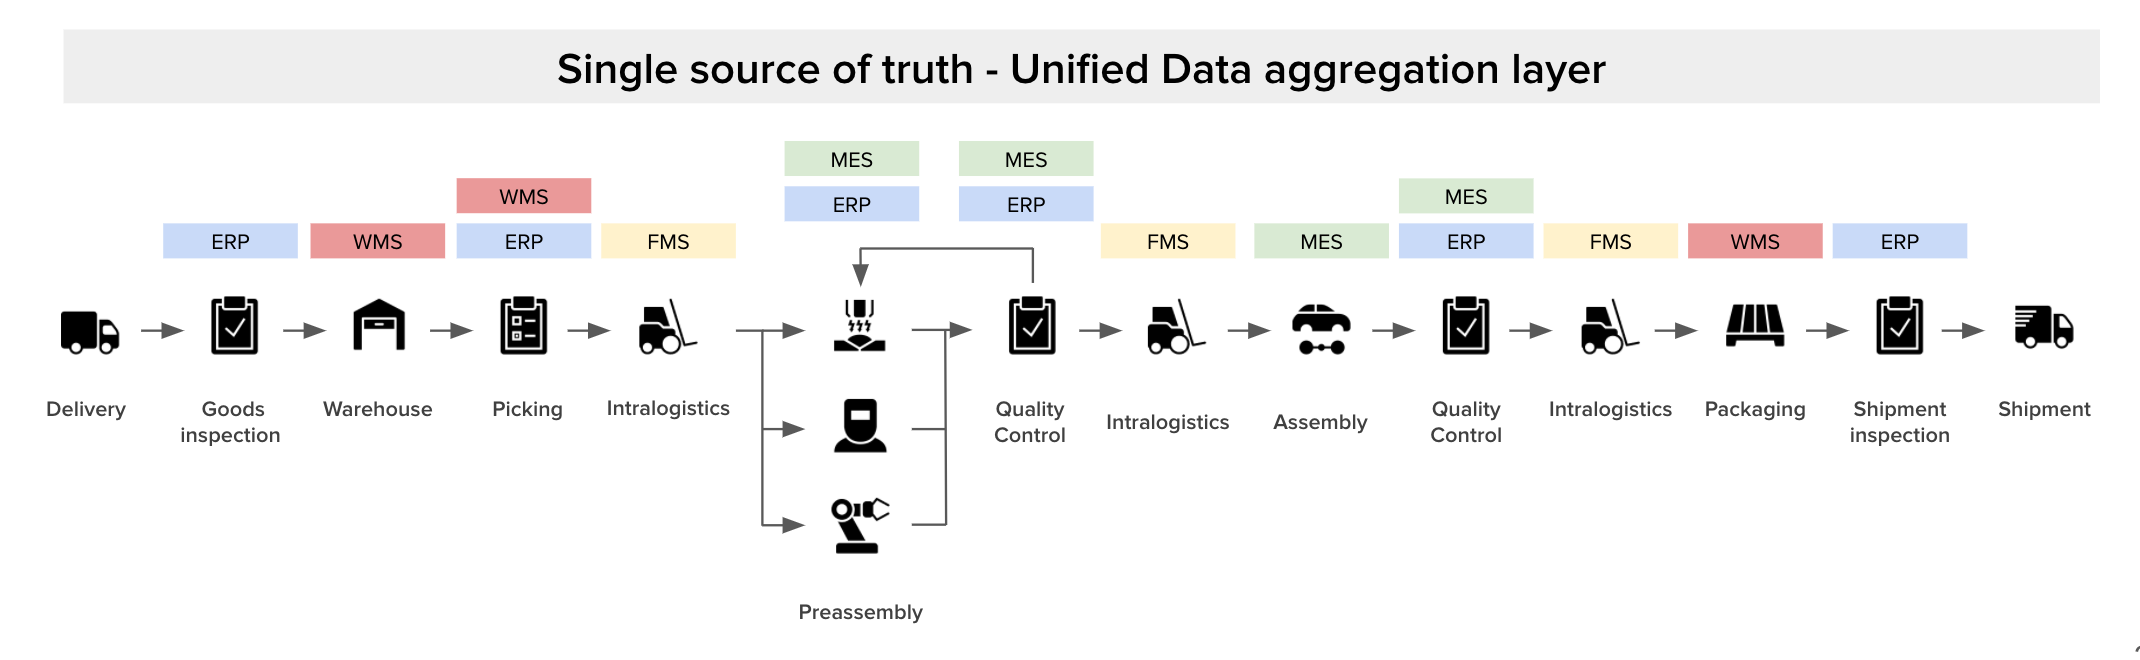 unified data aggregation layer